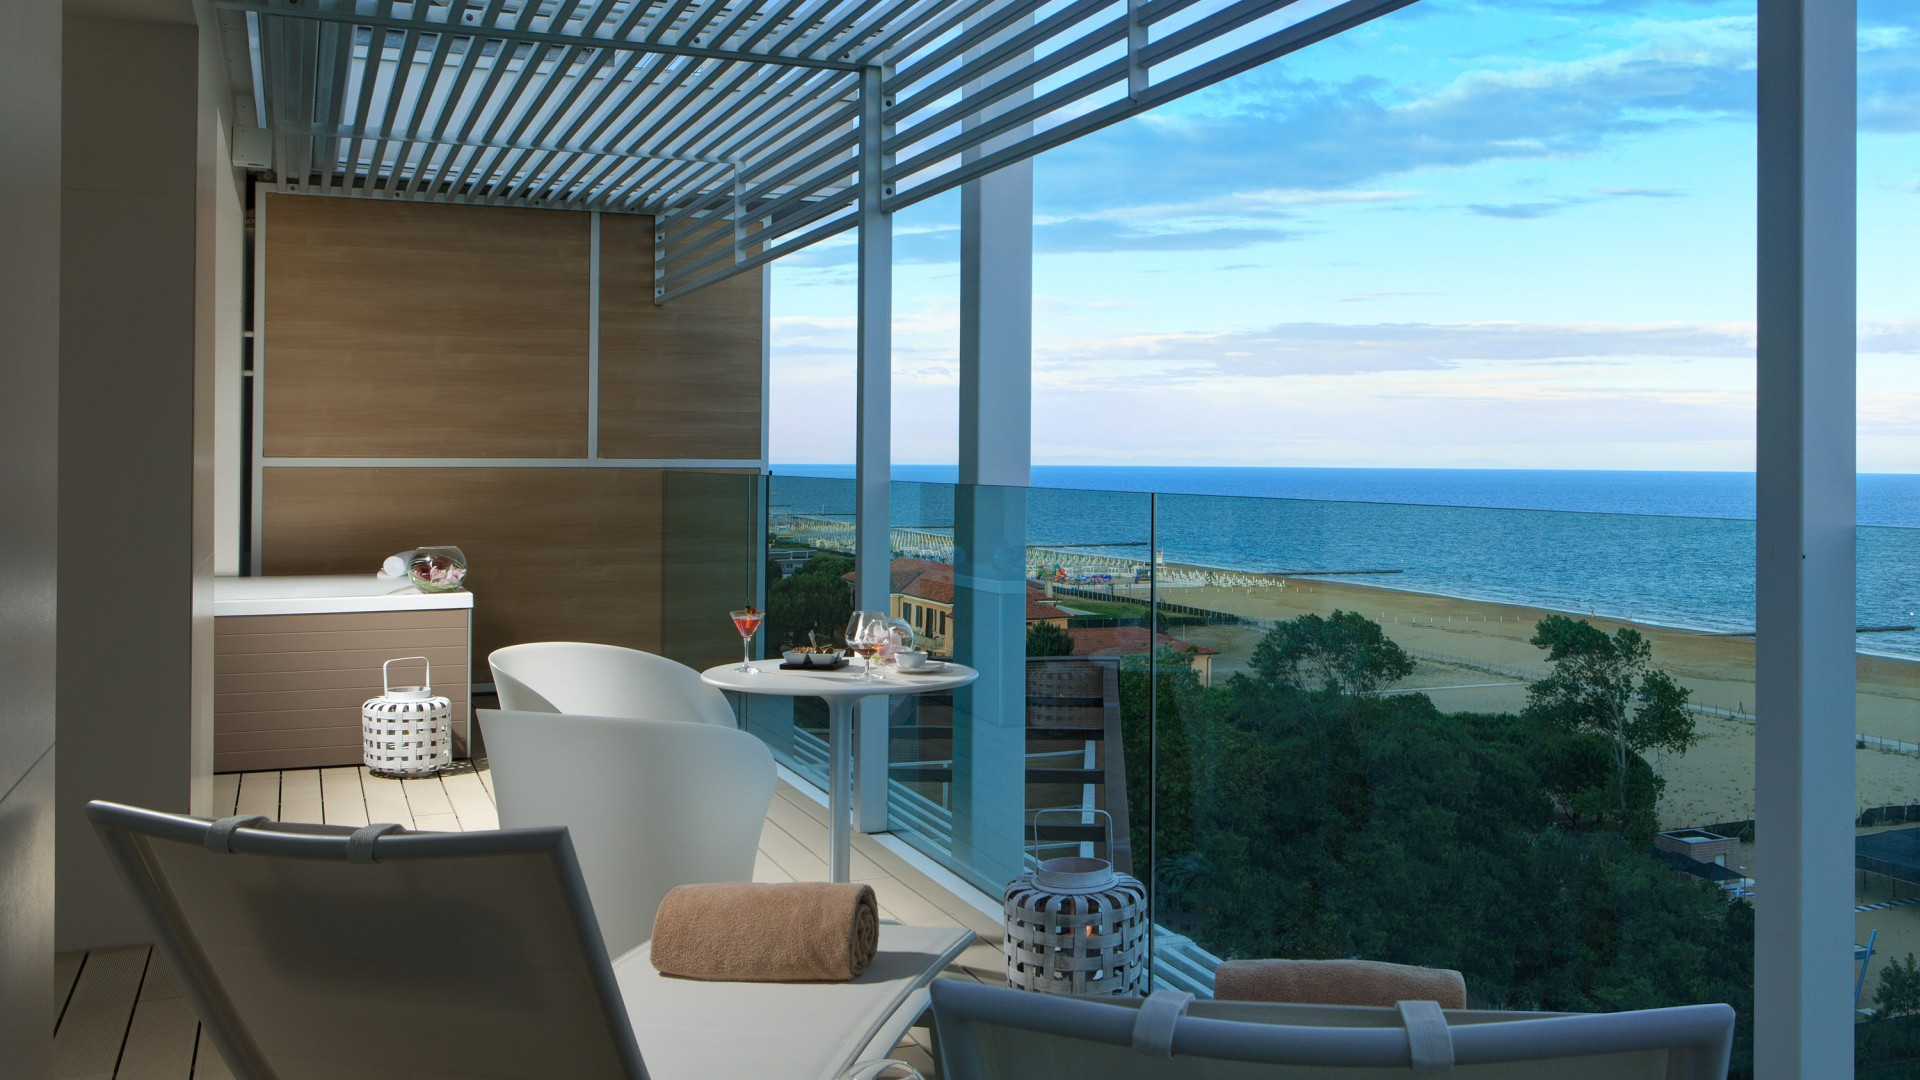 Almar Jesolo Resort and Almablu Spa, Veneto, Italy